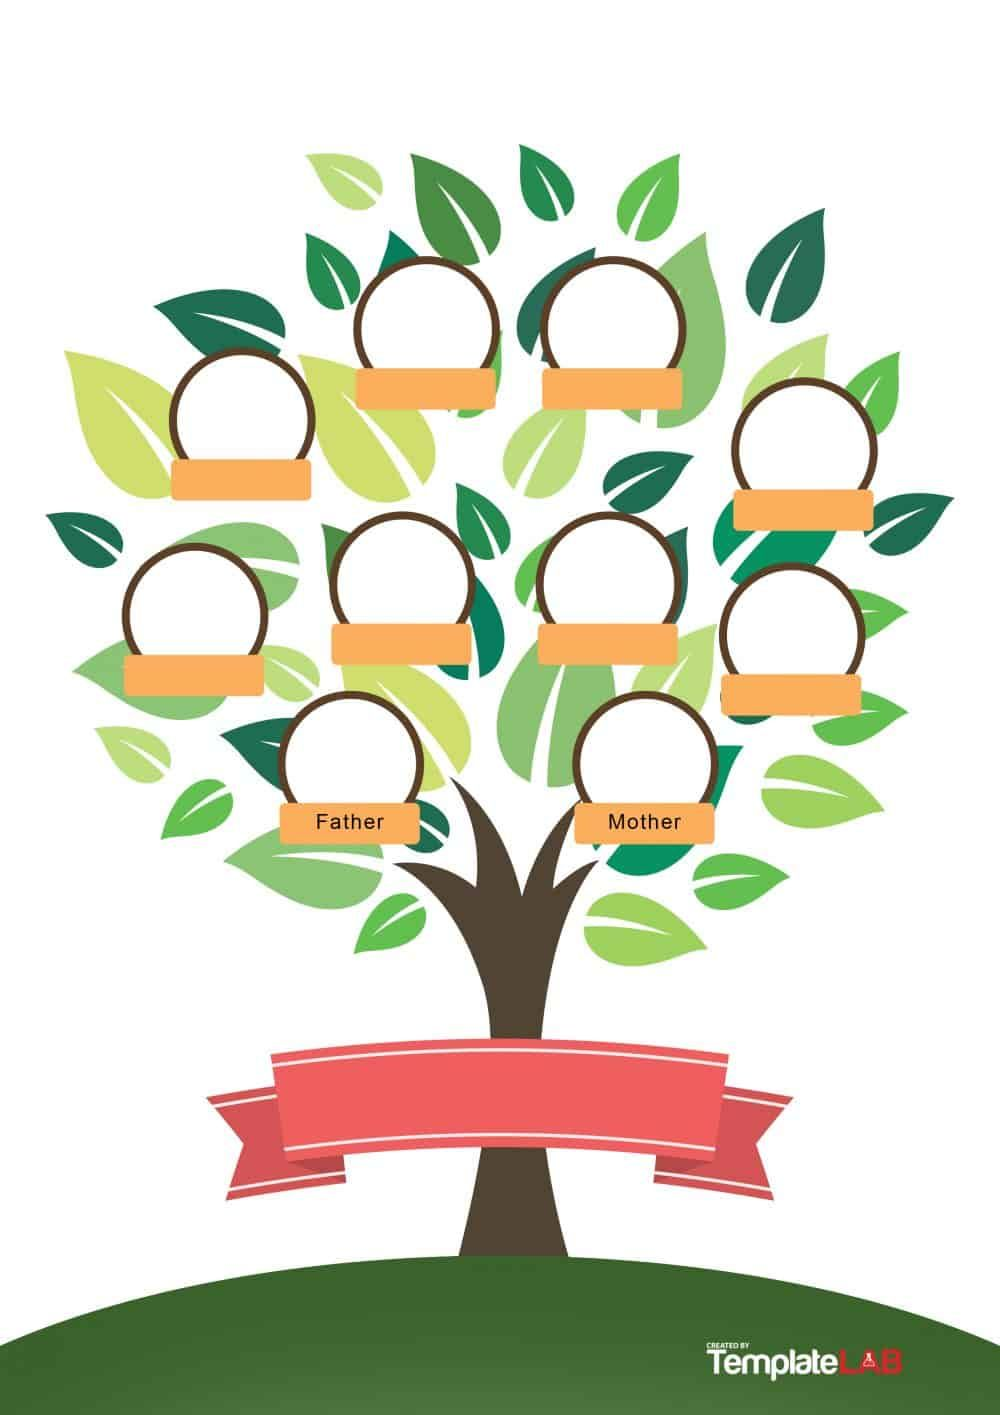 Download Family Tree Template 6 | Free family tree ...